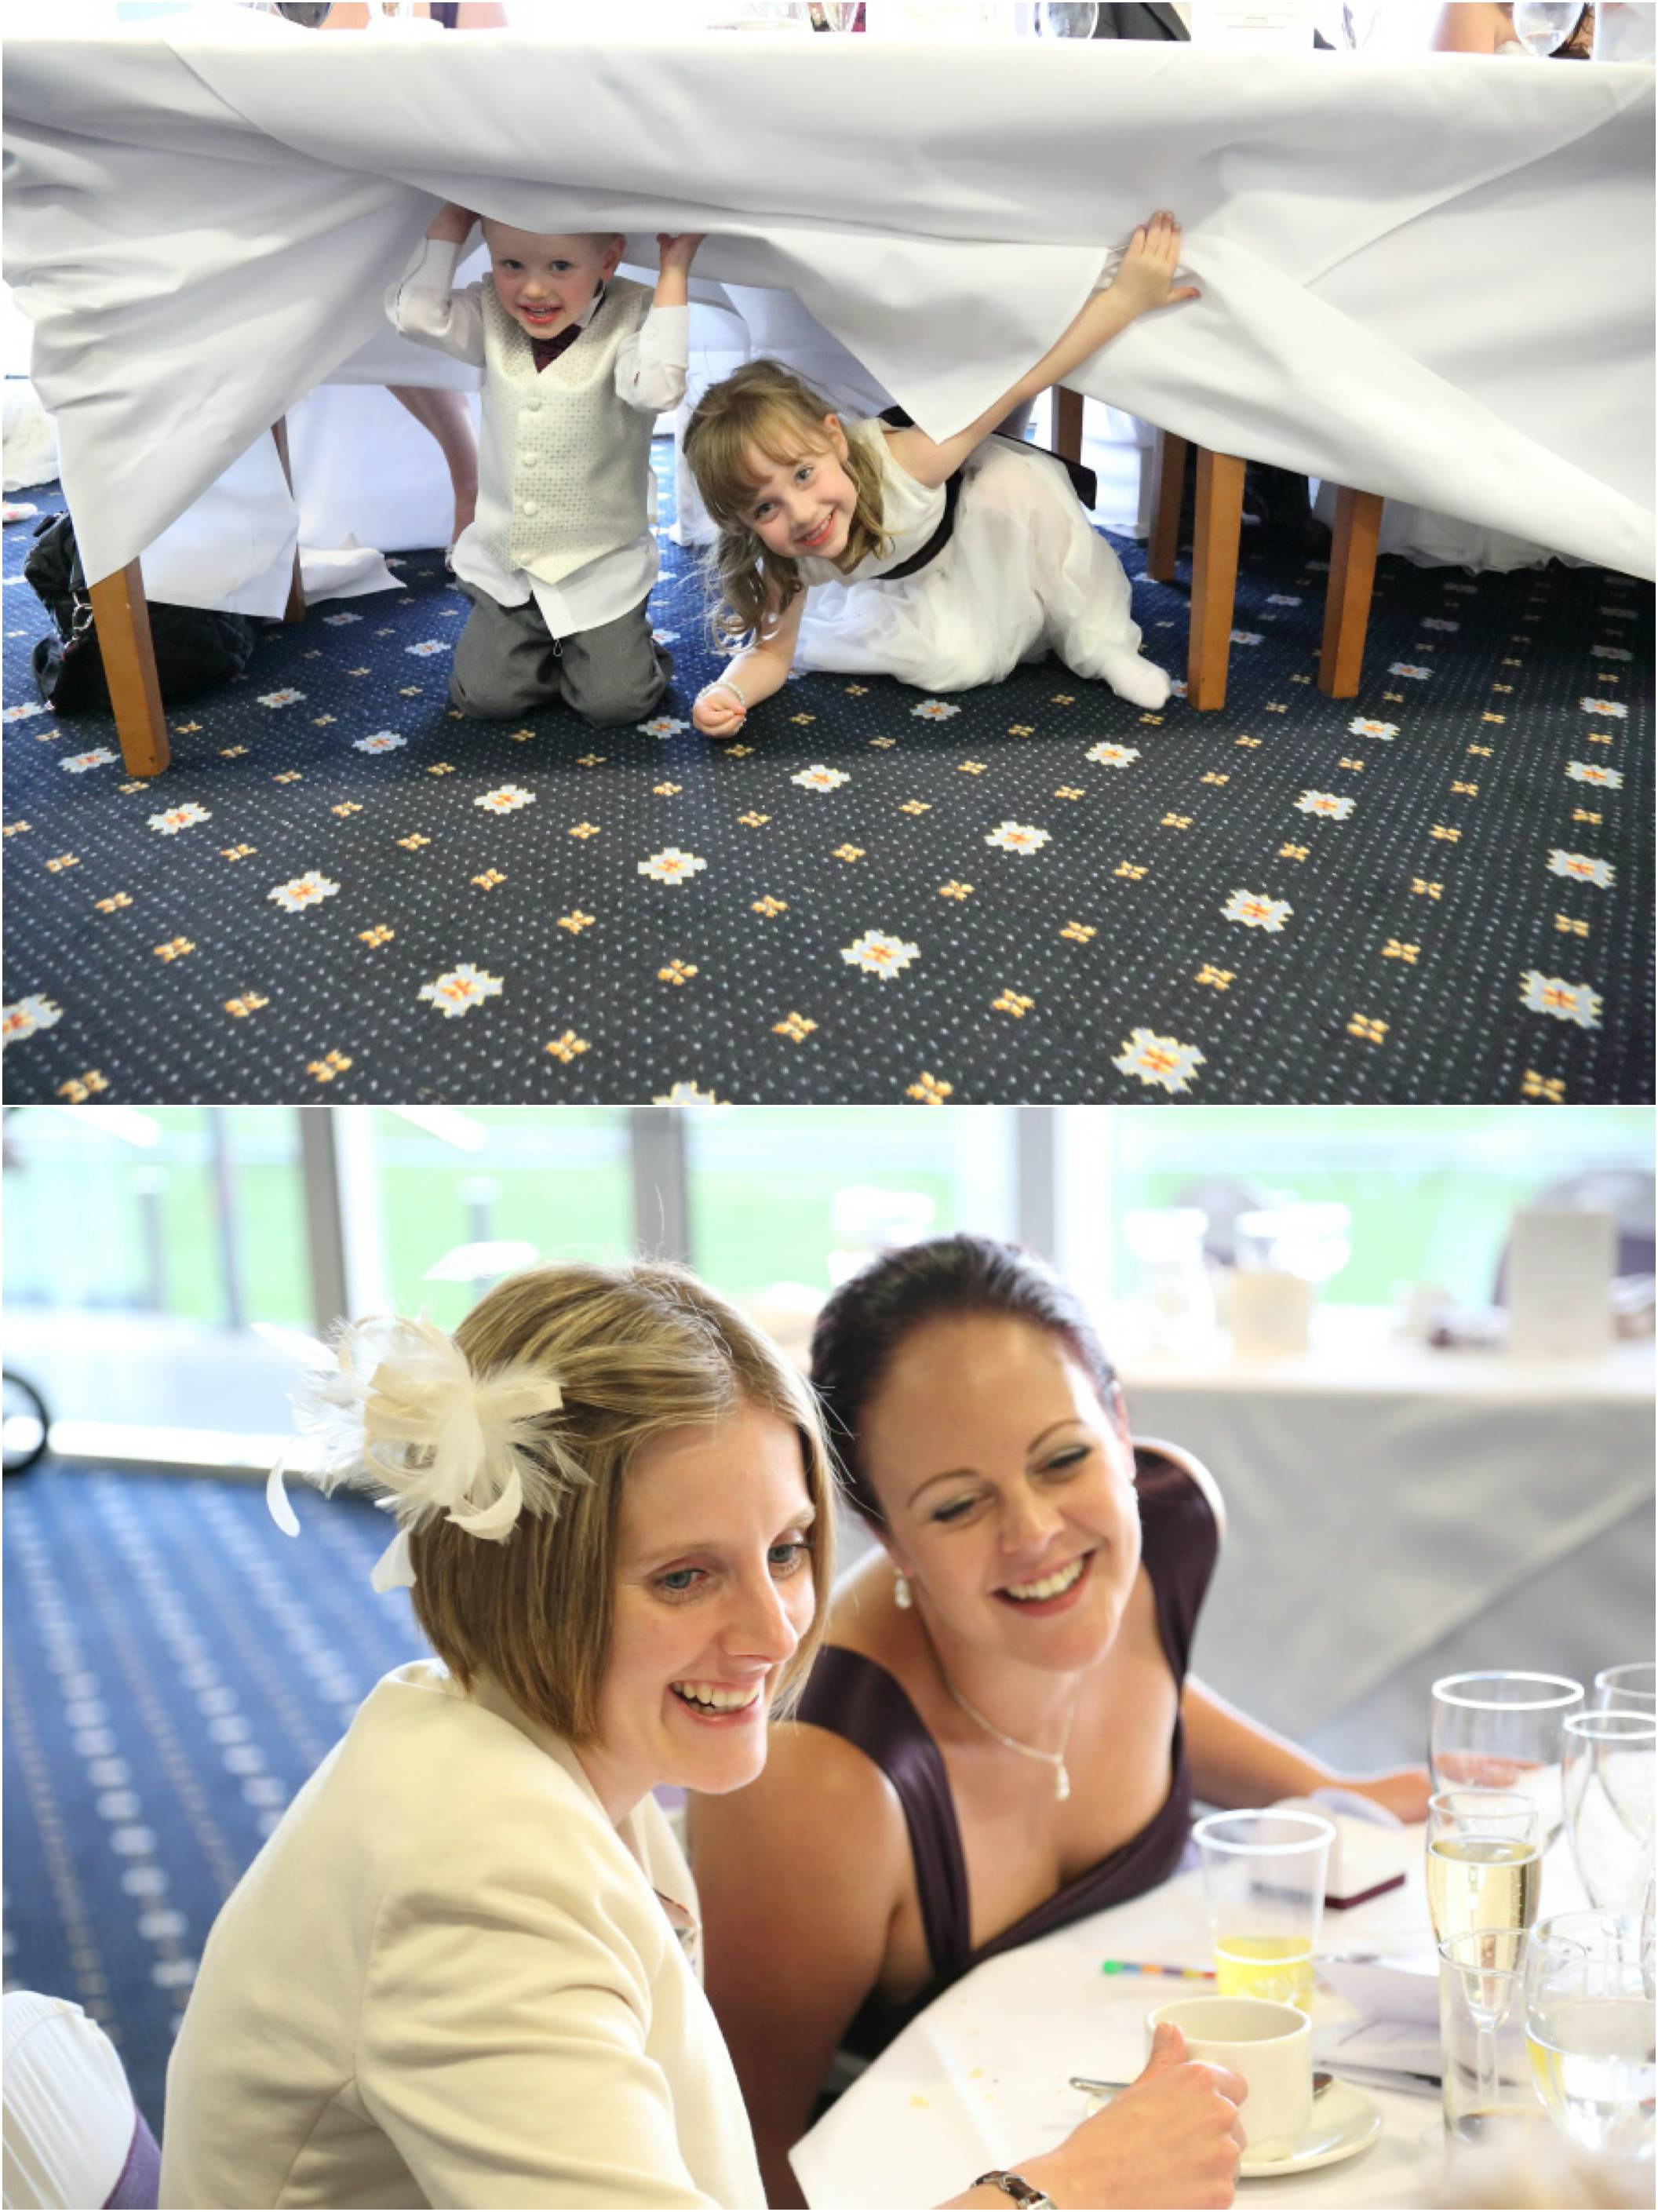 rowley-mile-mewmarkte-wedding-photography_0020